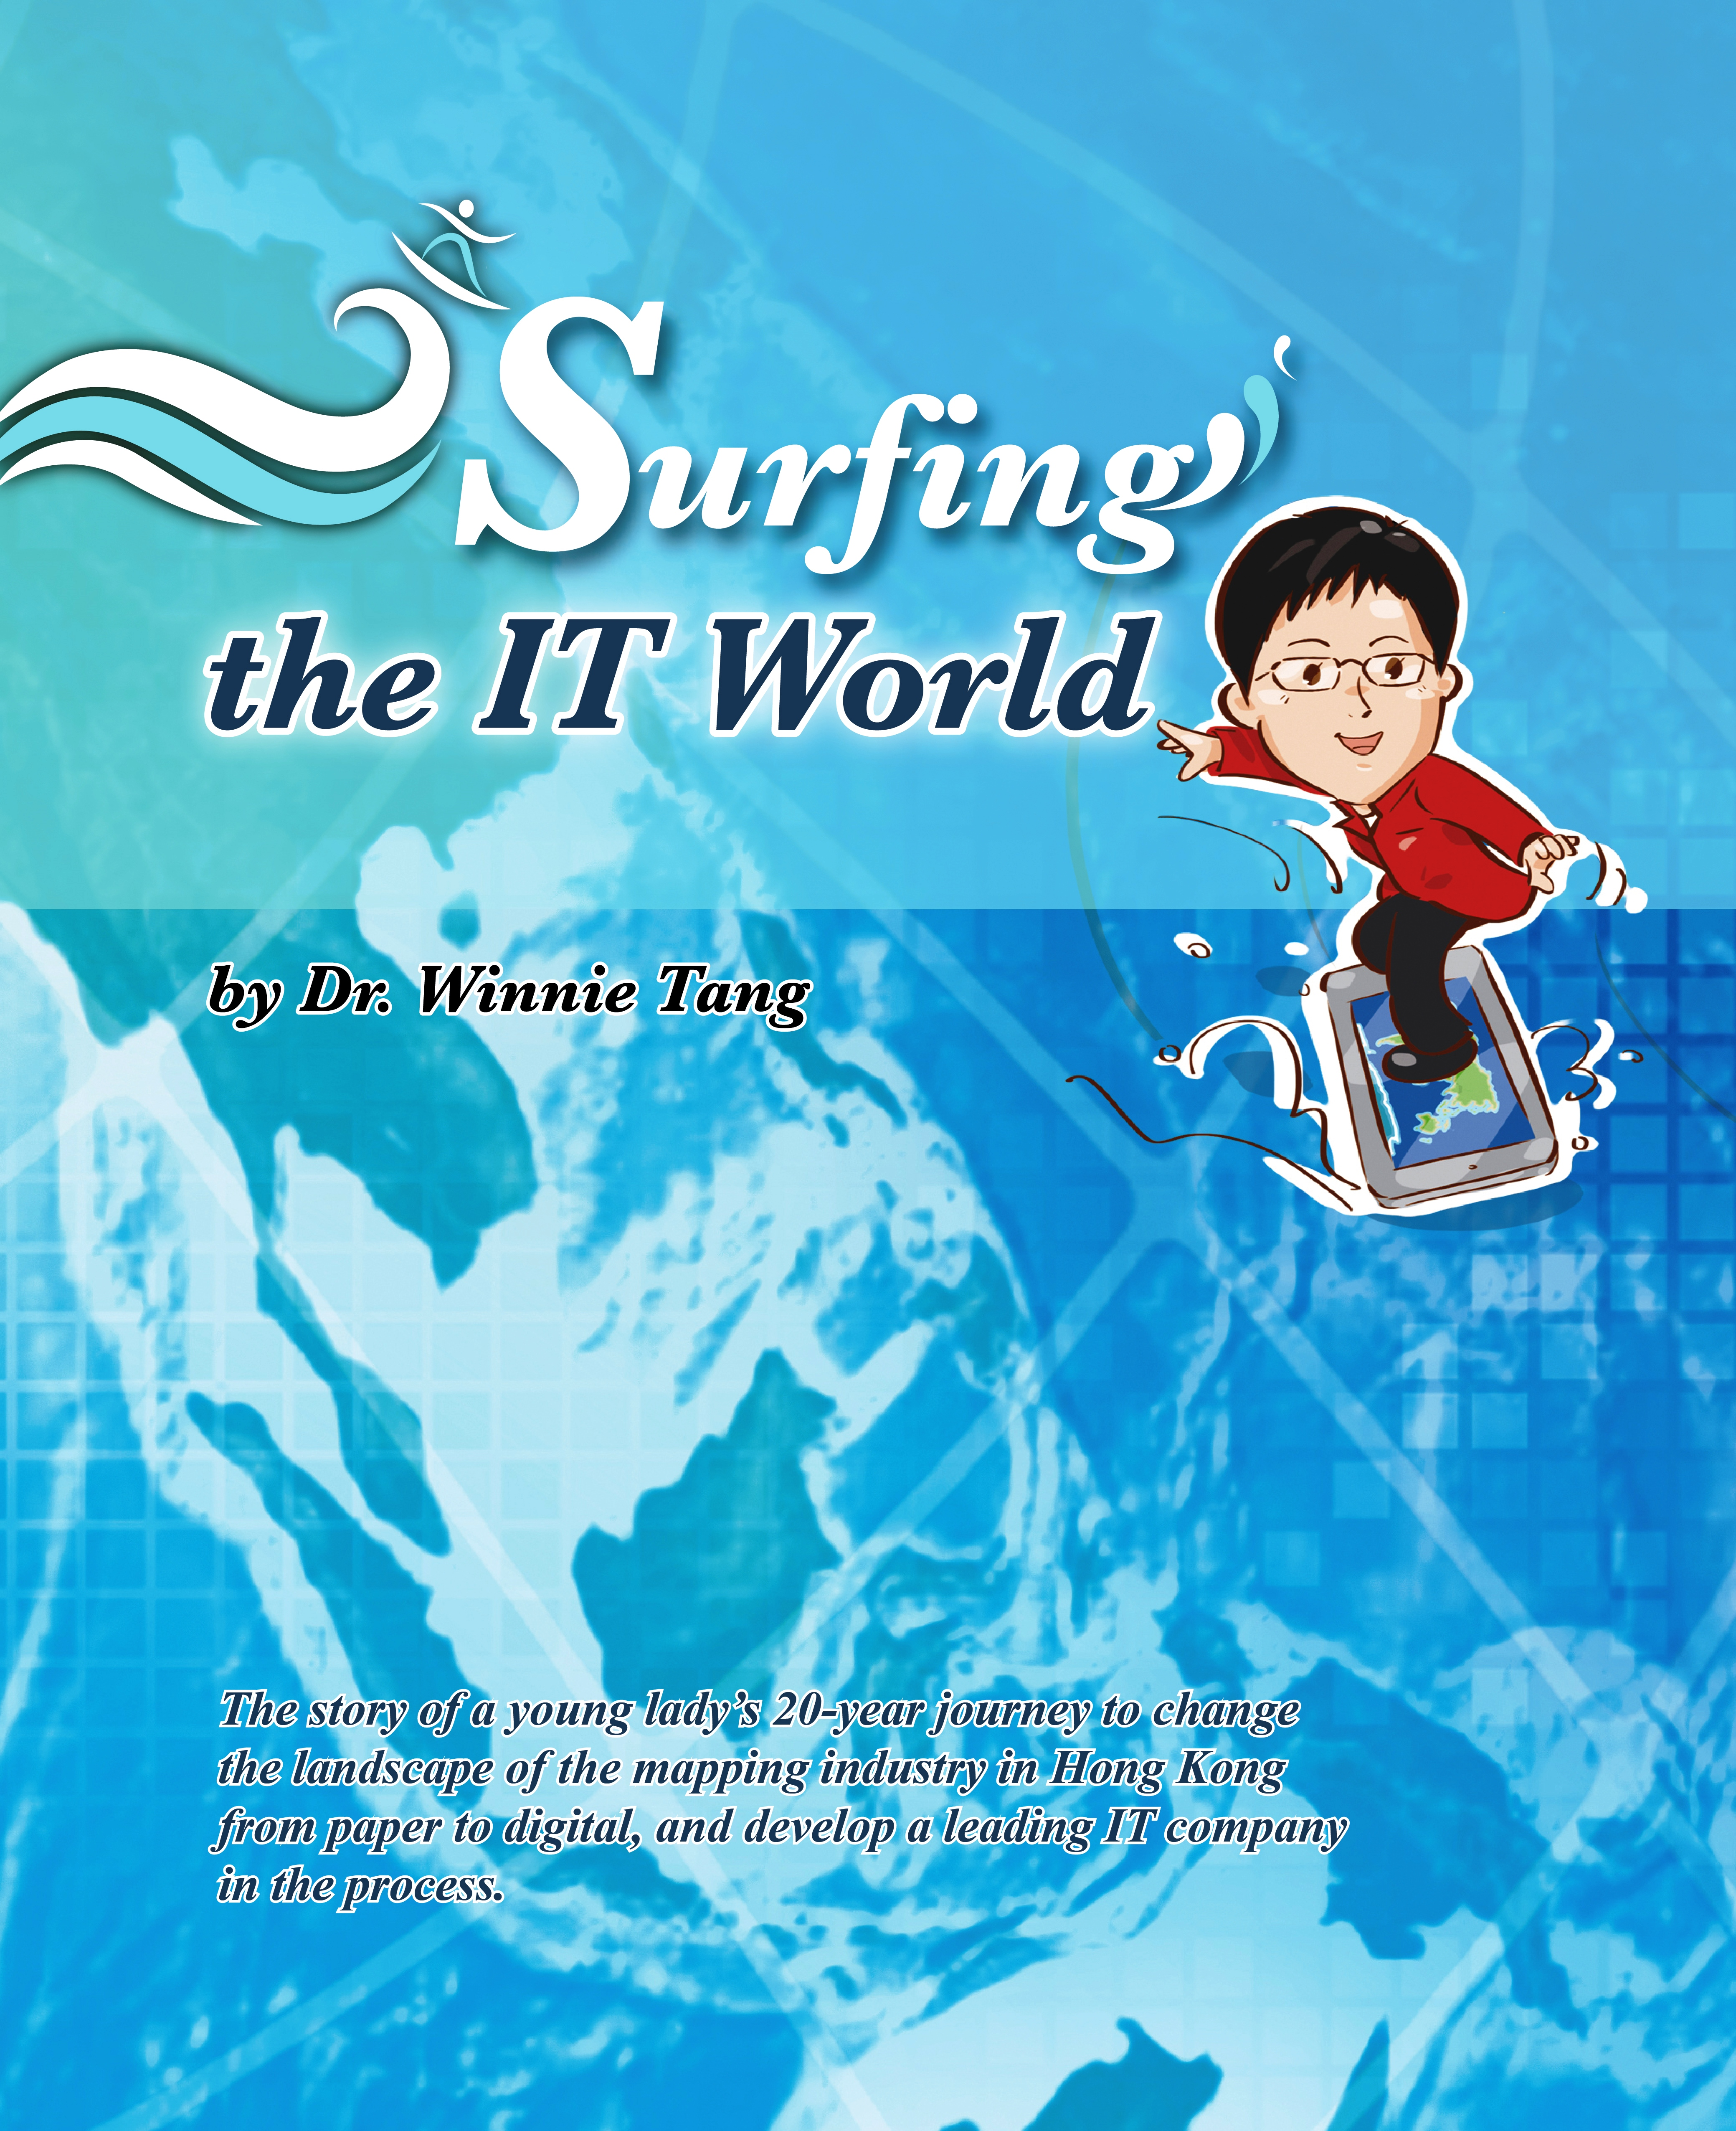 Surfing the IT World